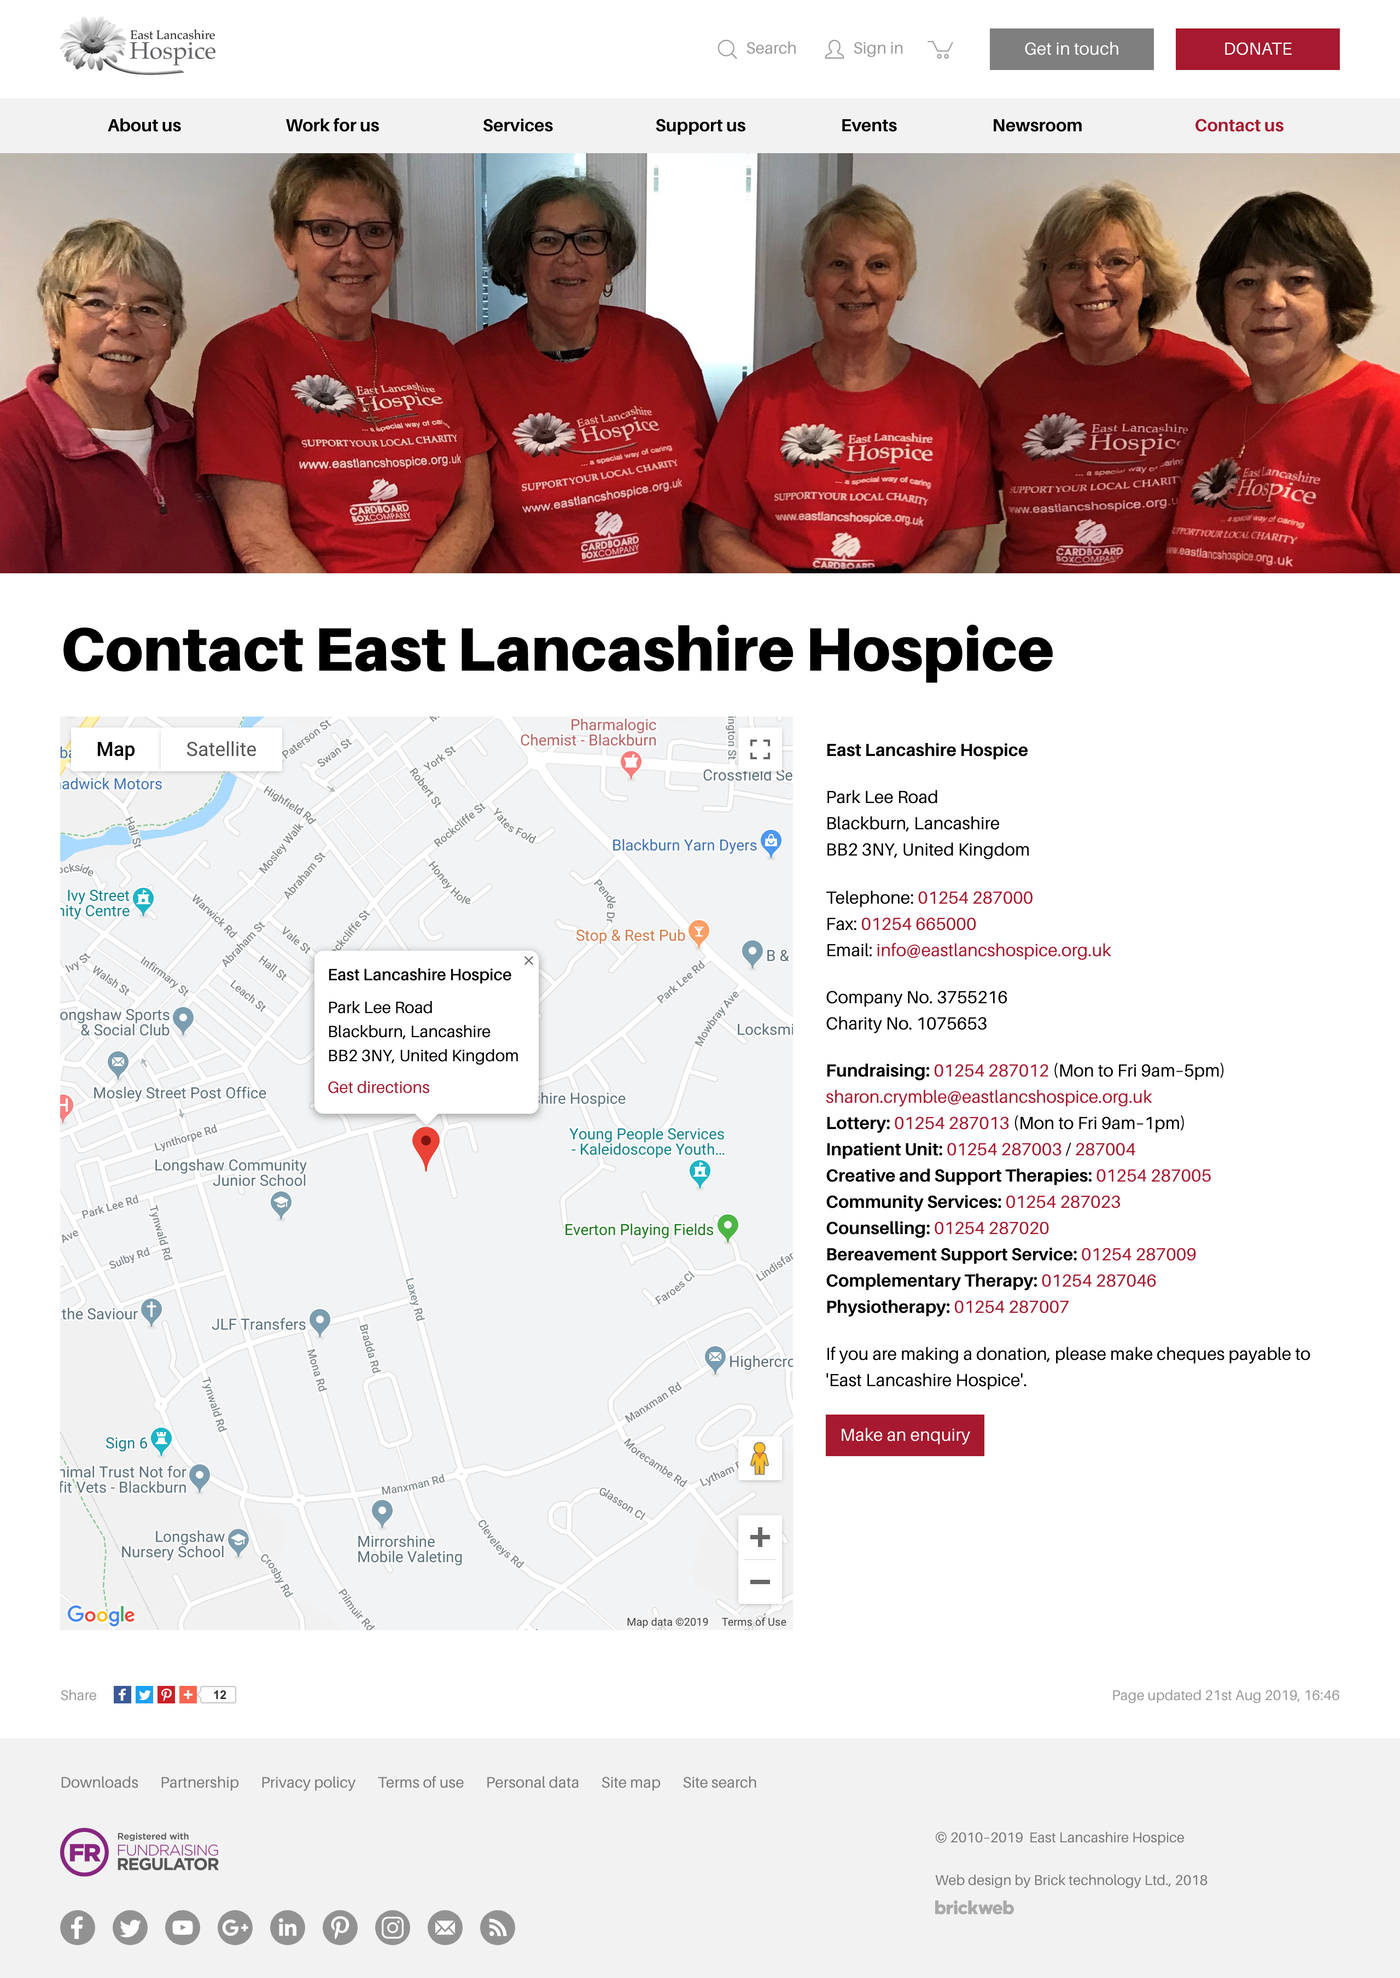 East Lancashire Hospice Сontact us